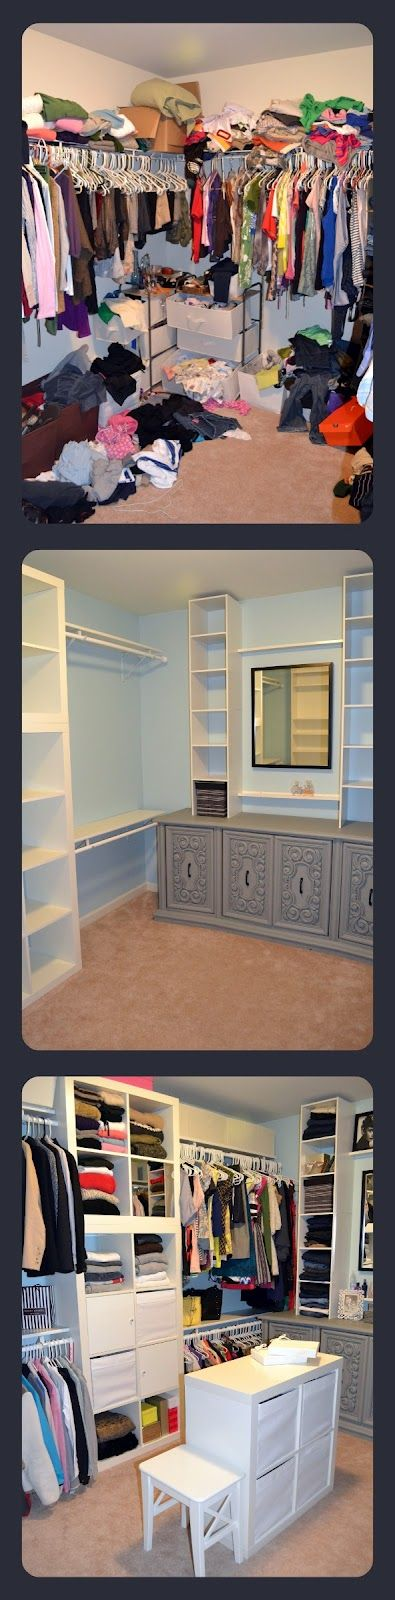 Closet makeover with ikea expedit cheap closet buit ins for Cheap walk in closet ideas